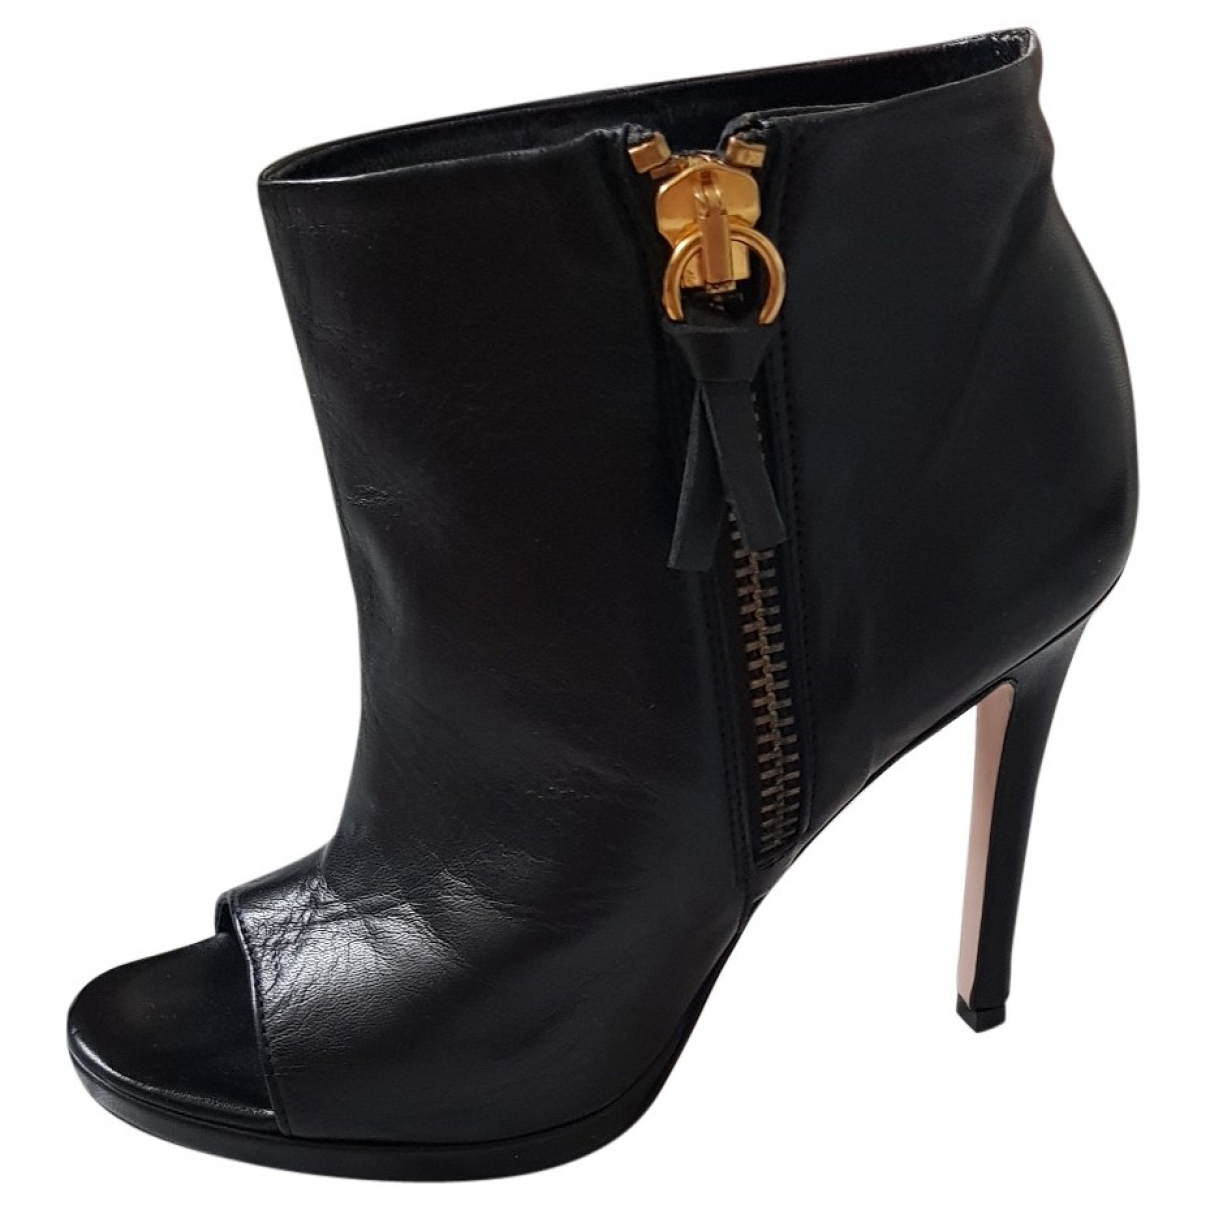 Jucca \N Black Leather Ankle boots for Women 36 EU